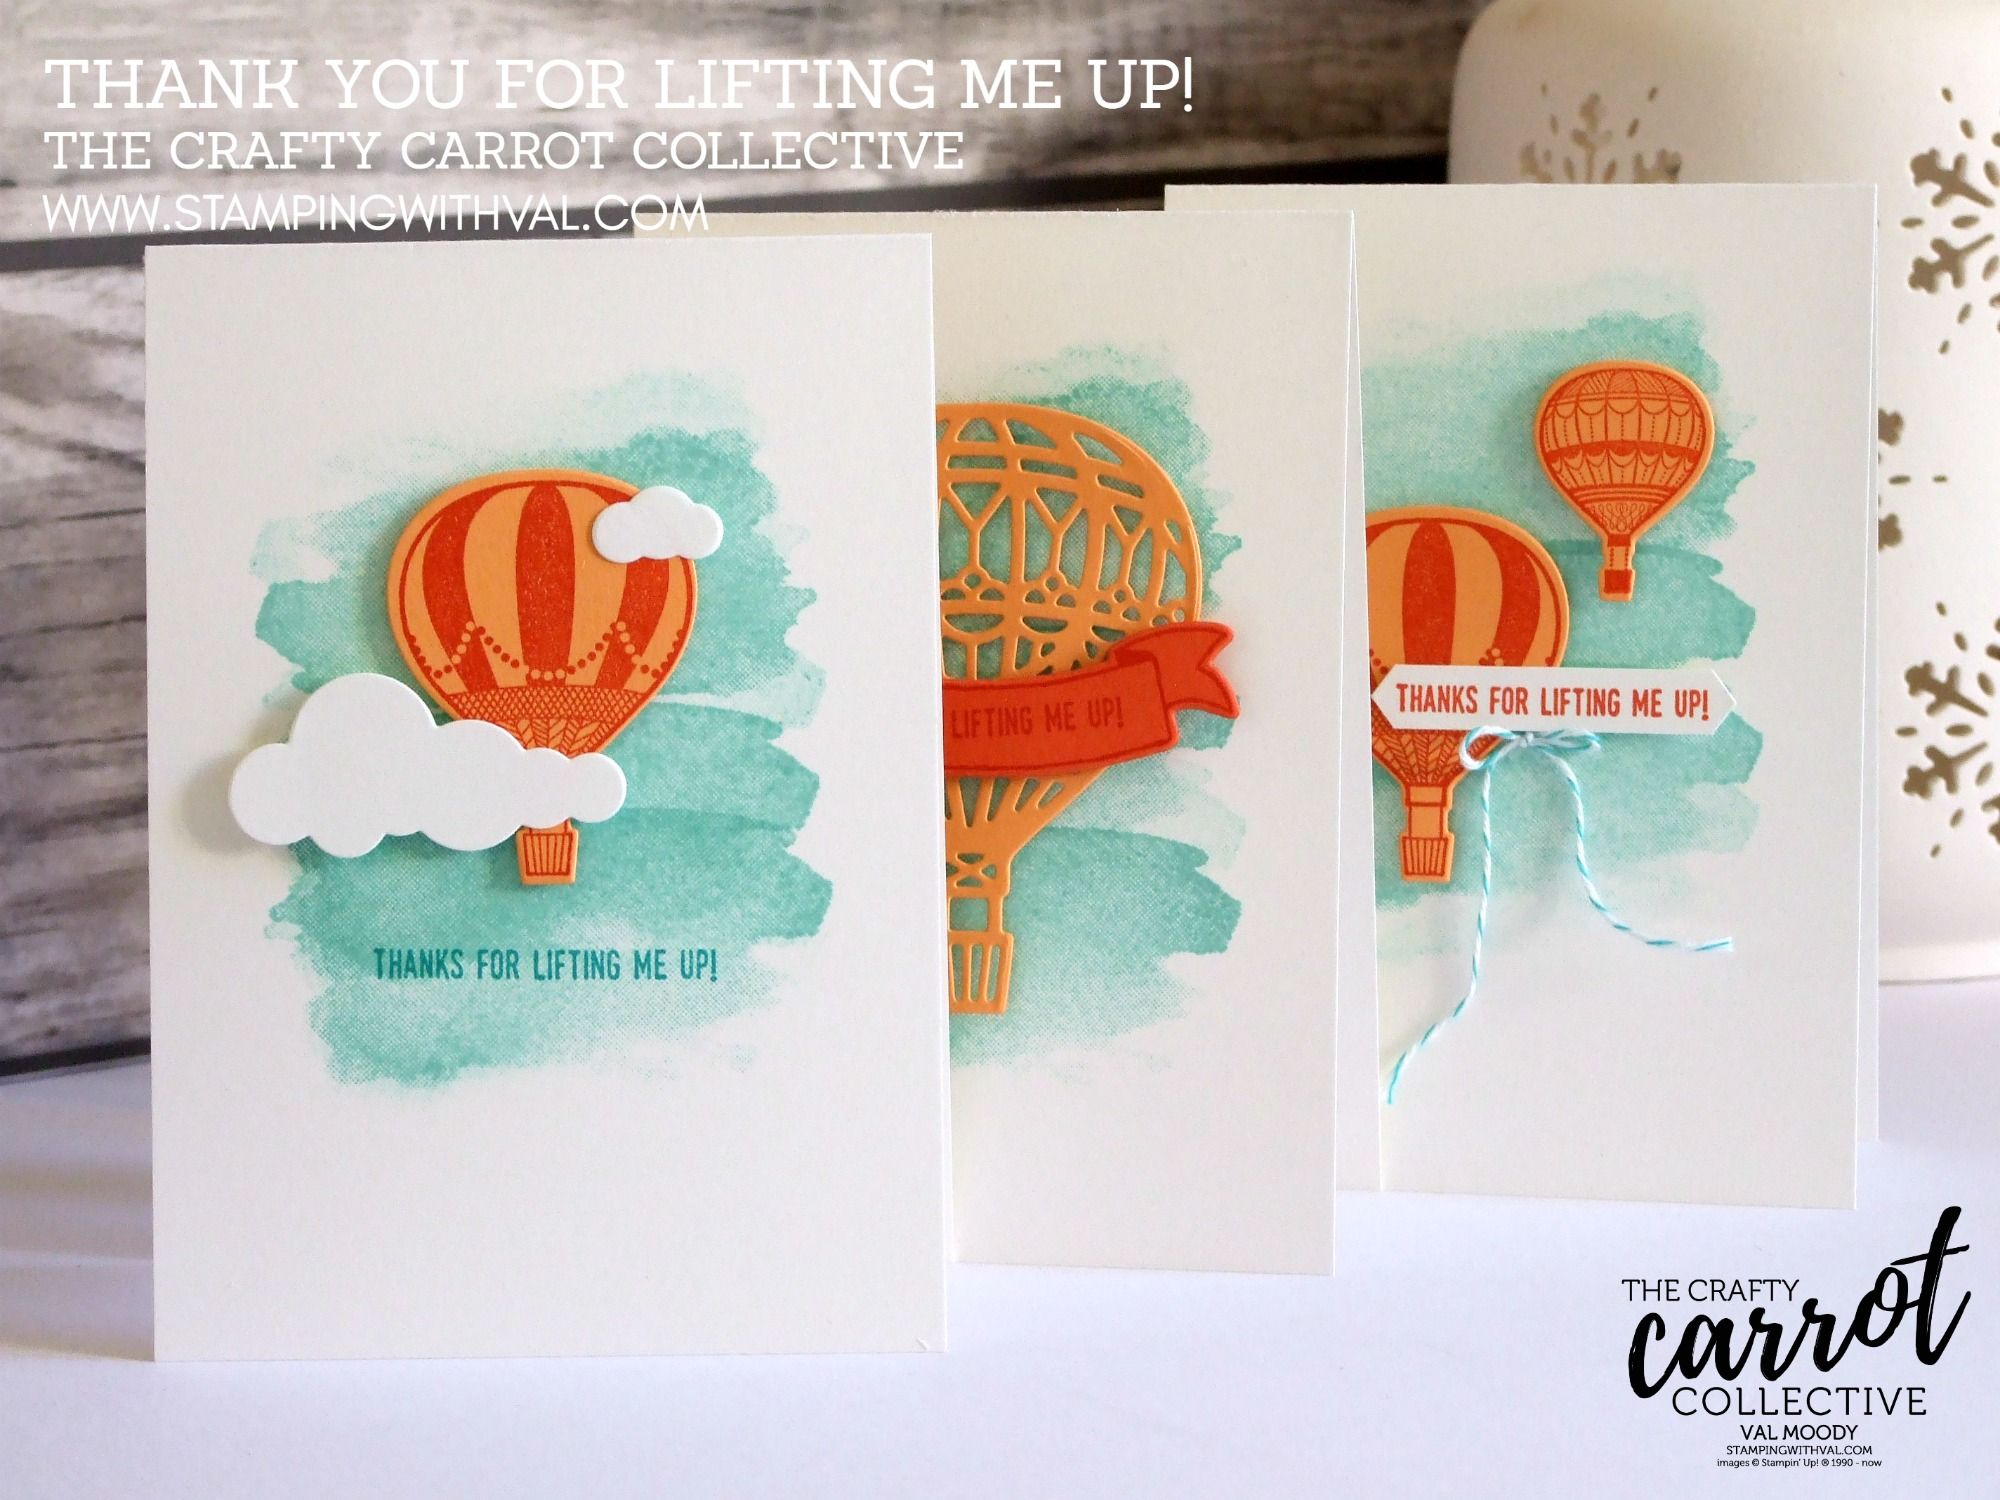 Stampin' Up! UK - Crafty Carrot Collective - Valerie Moody